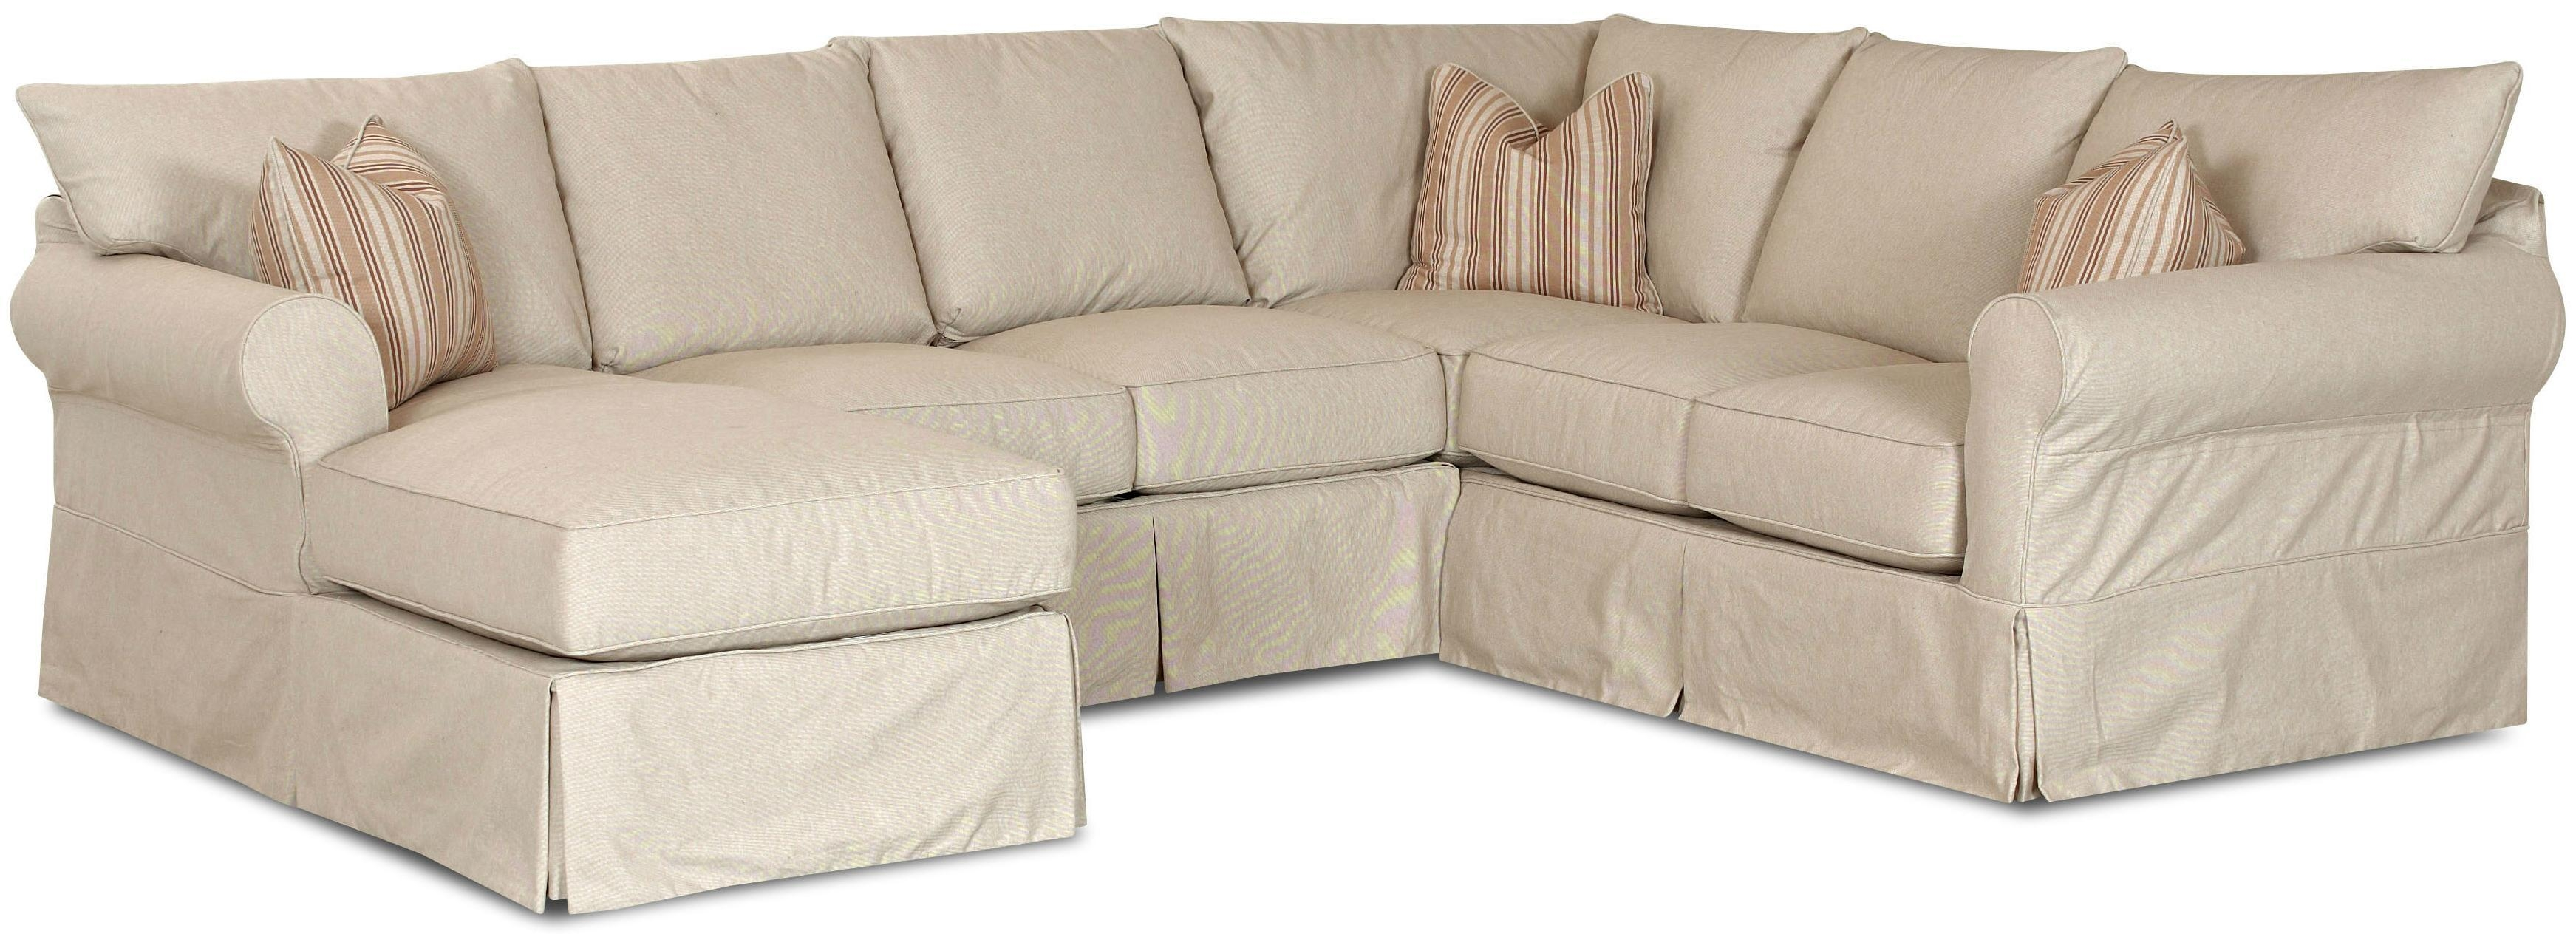 Inspirations: Interesting Furniture Sectional Sofa Slipcovers For With Sectional Sofa Covers (View 4 of 20)